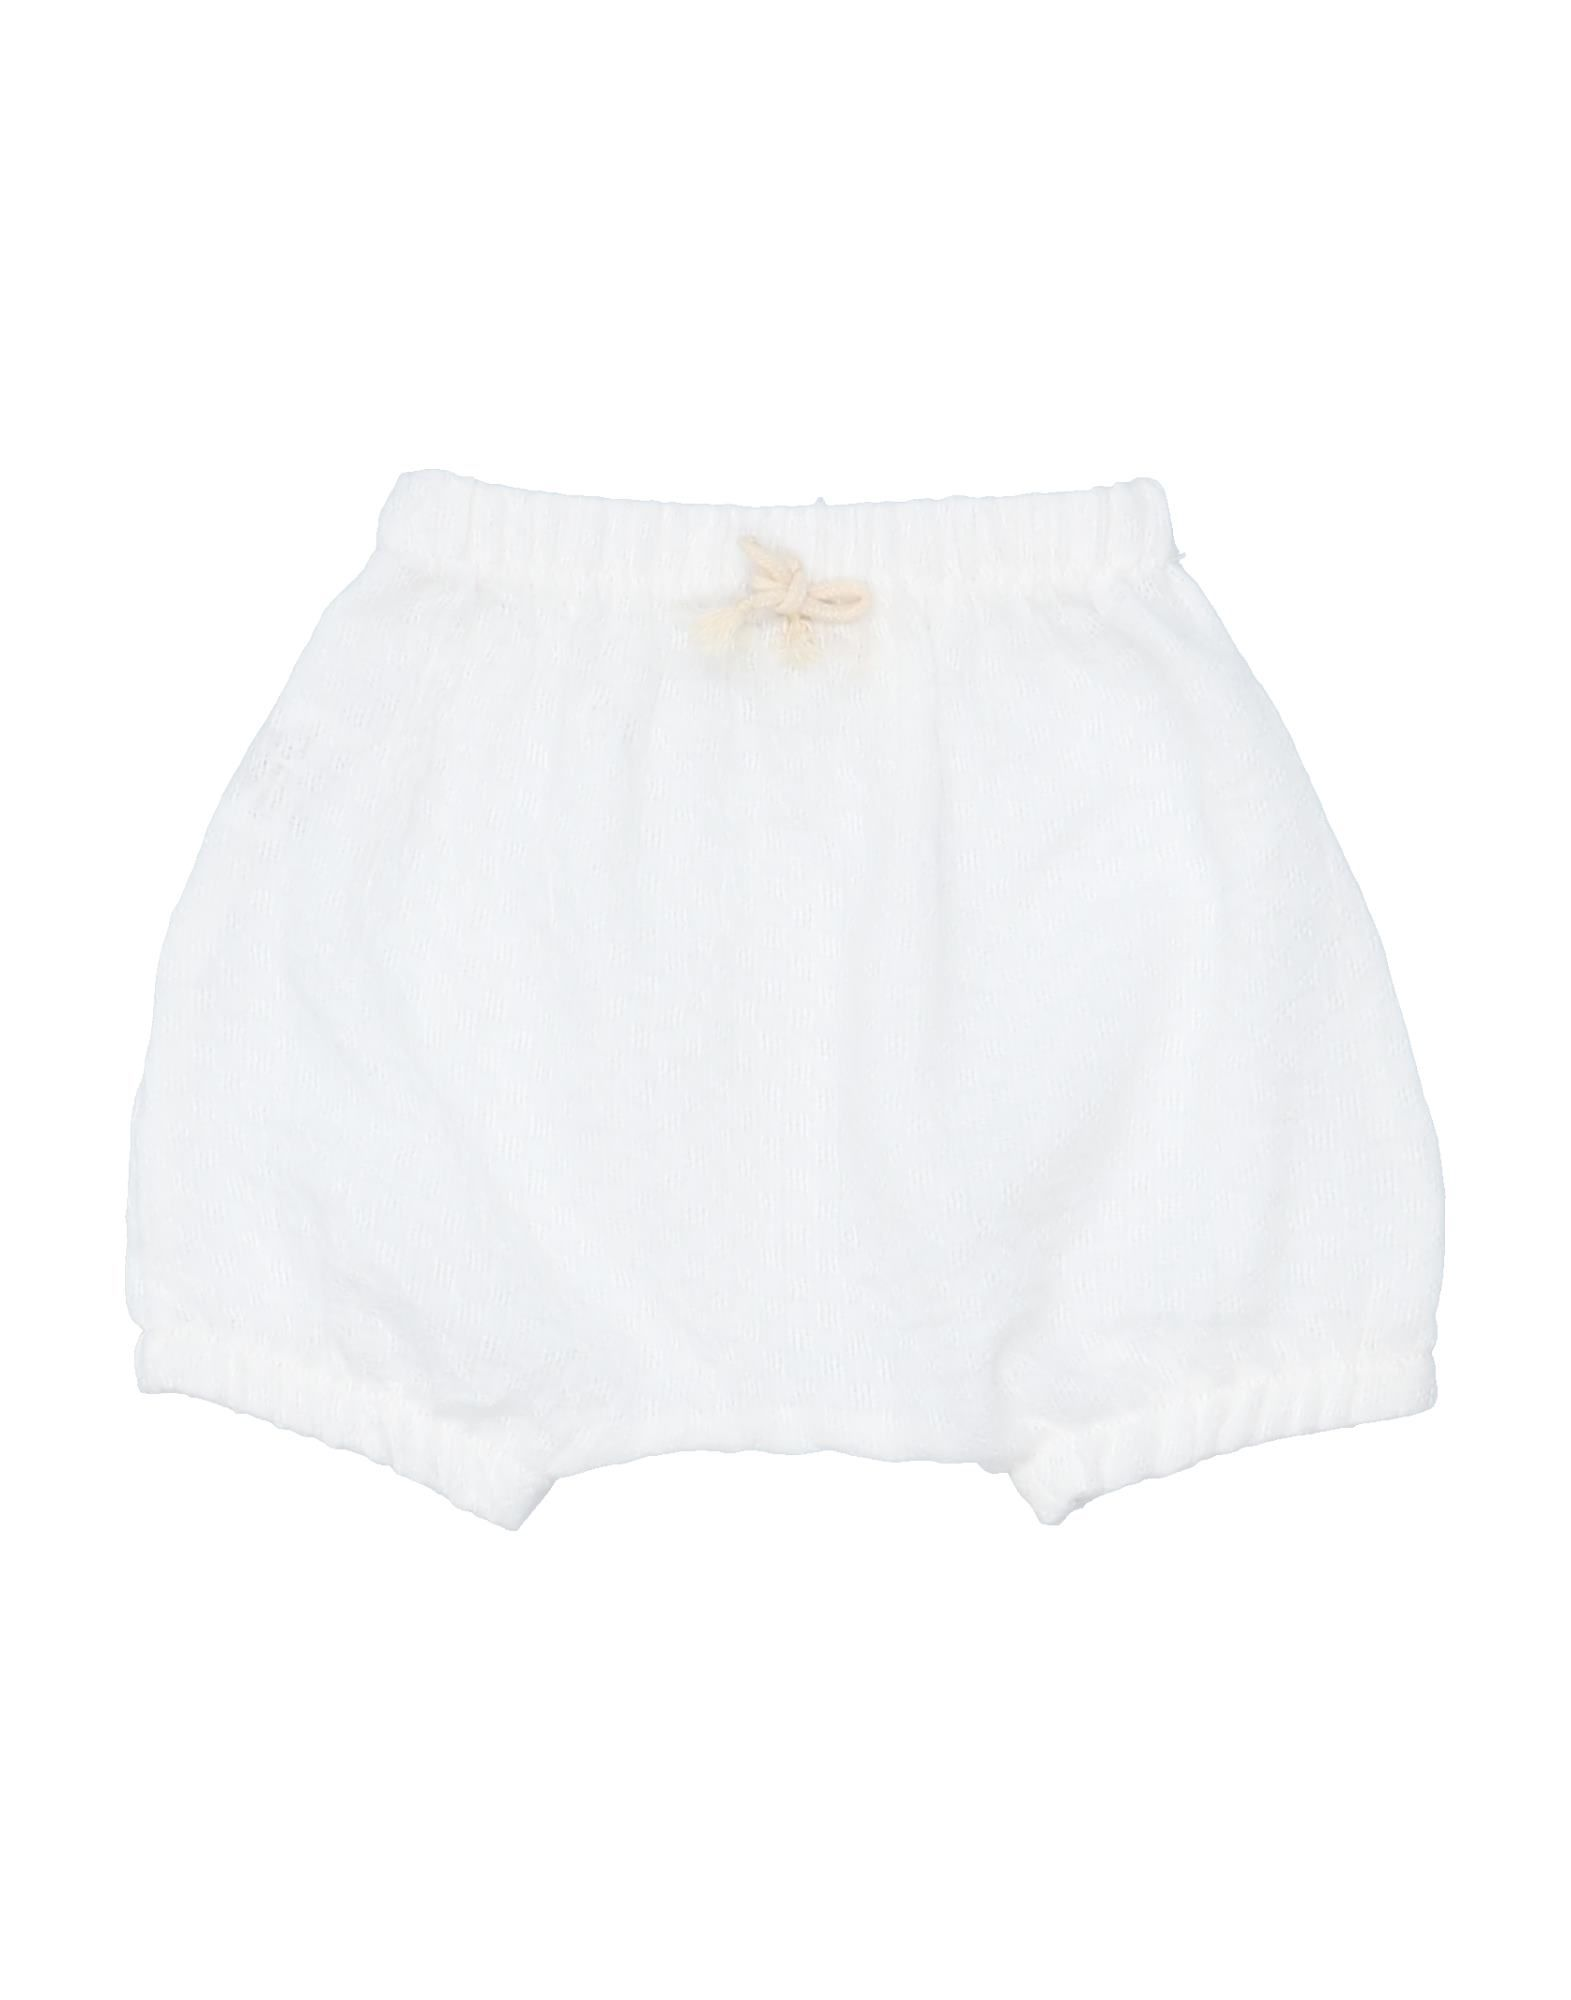 1+ In The Family Kids' Shorts In White